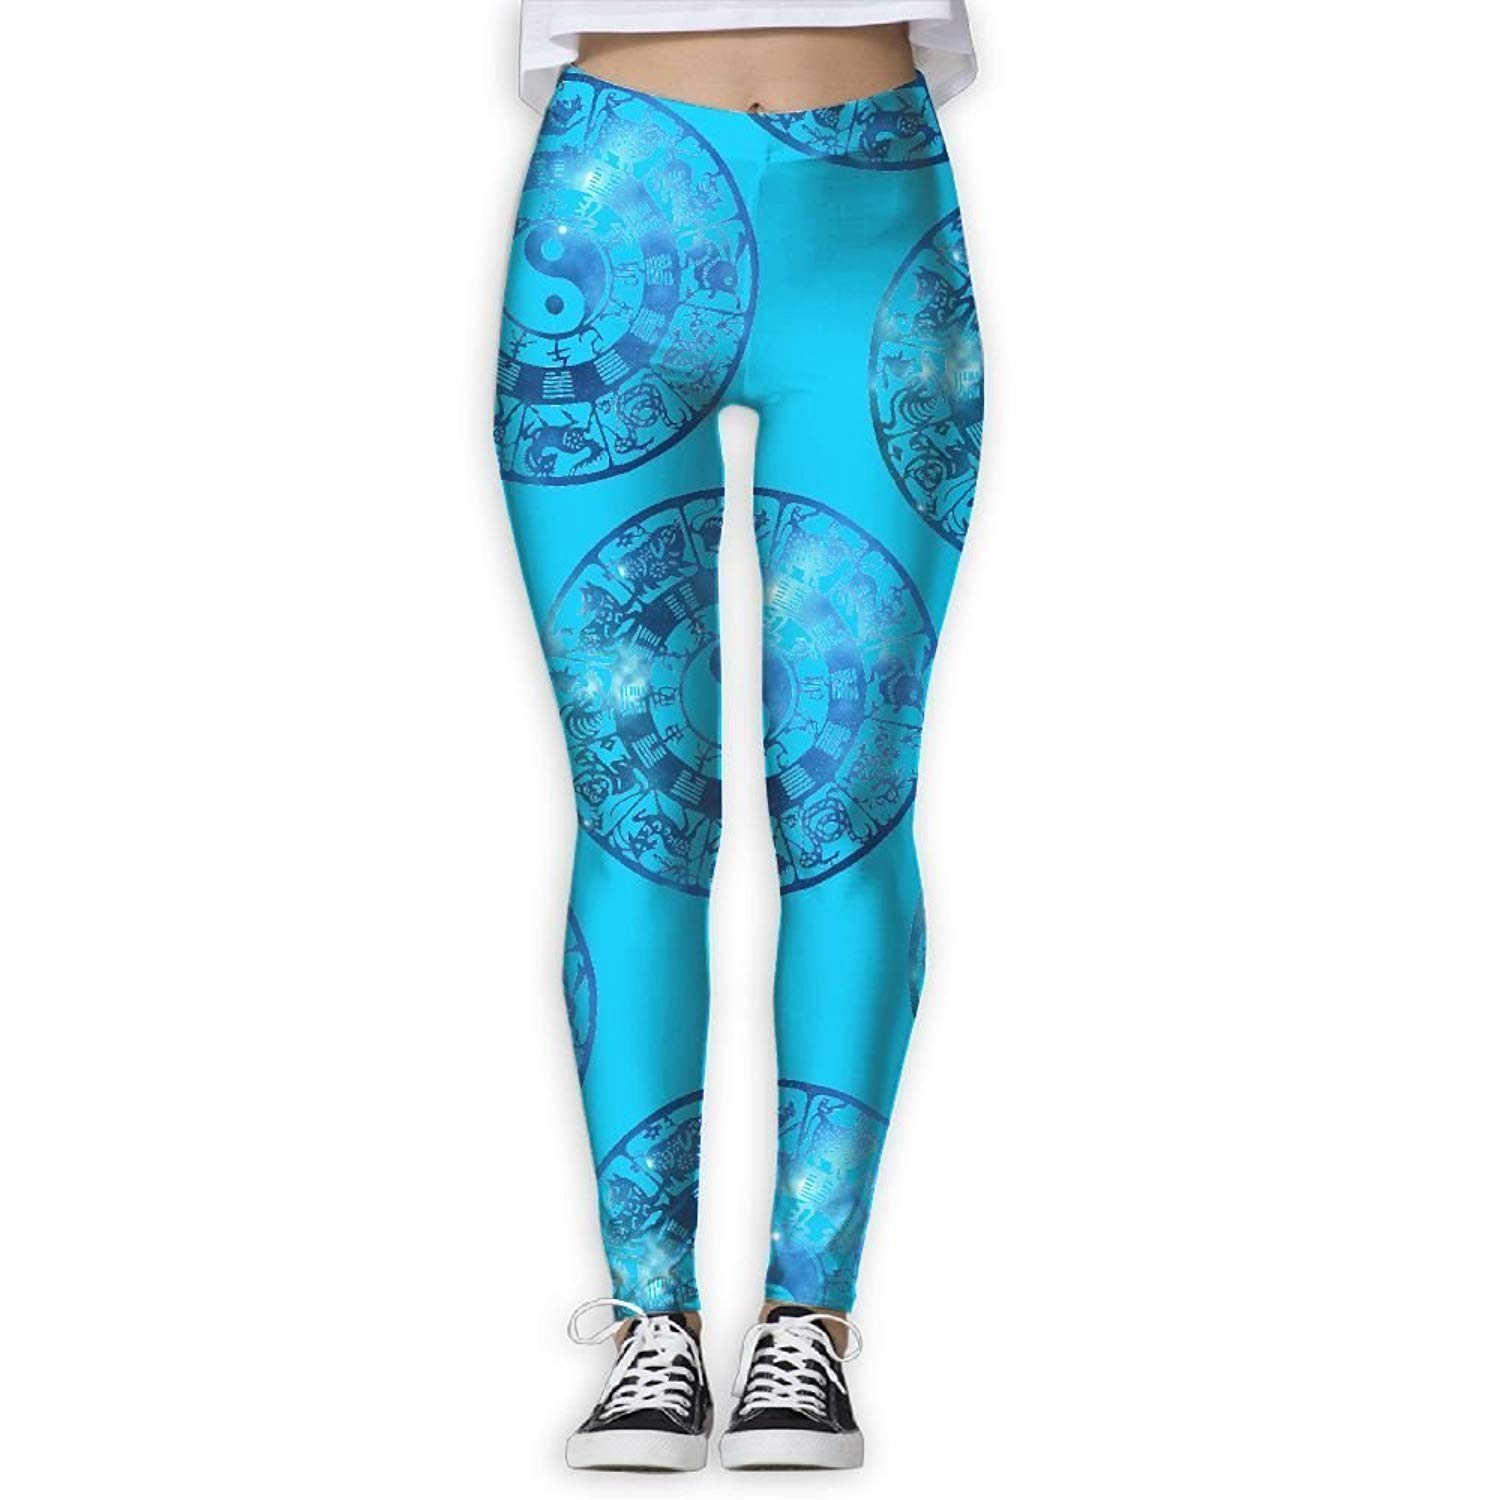 f33112a4f0f153 Get Quotations · Sodika Trout Fish Jumping Womens Printed Design Legging  Workout Legging Yoga Pant